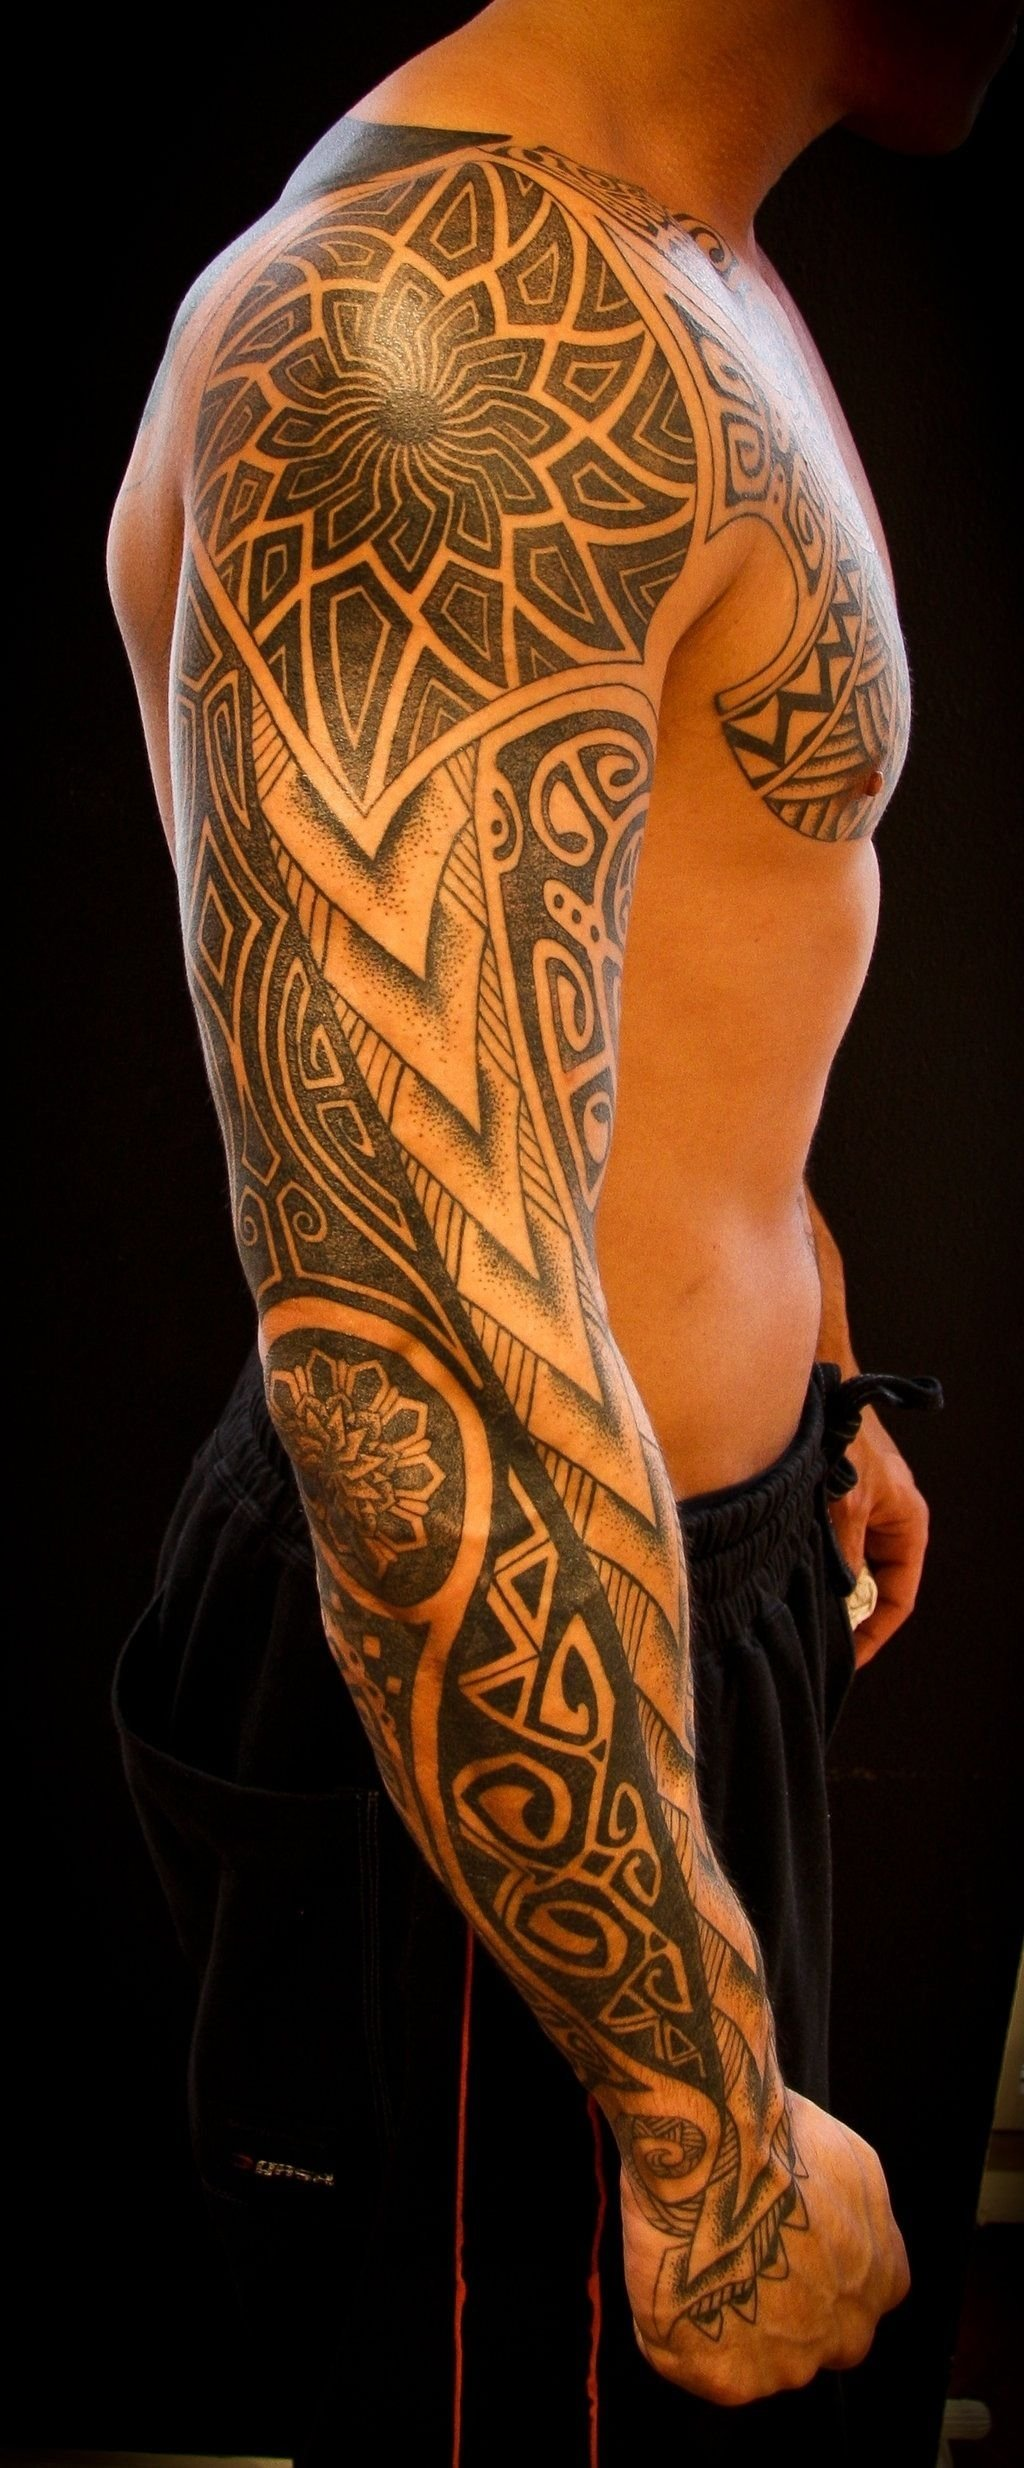 10 Best Awesome Tattoo Ideas For Guys 70 awesome tribal tattoo designs tattoo tatting and tatoo